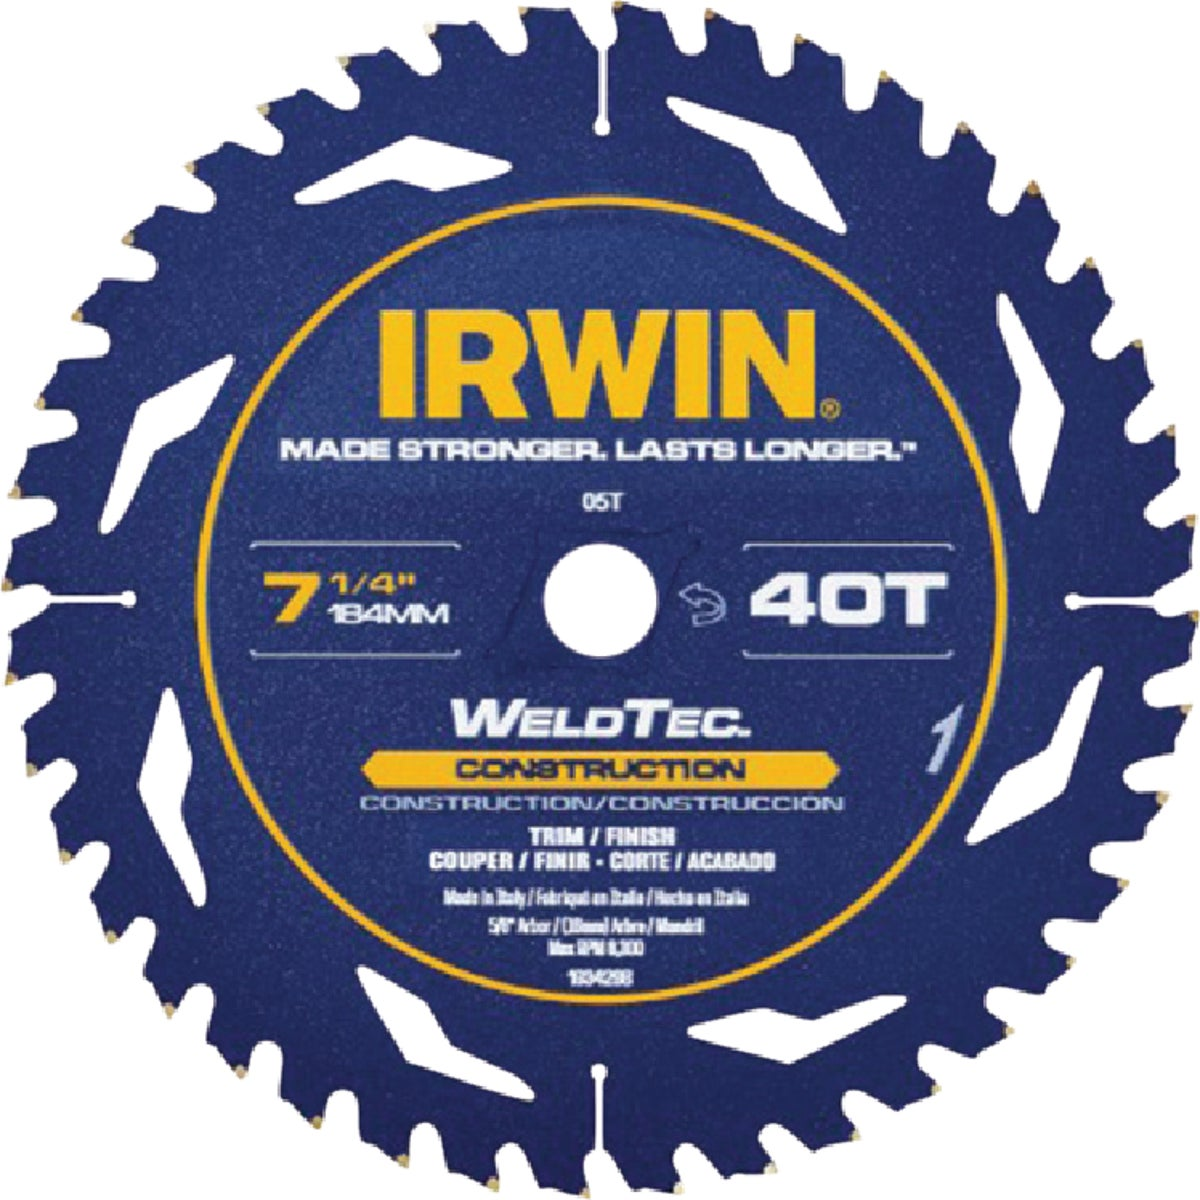 "7-1/4"" 40T WELDTEC BLADE - 4935200 by Irwin Industr Tool"